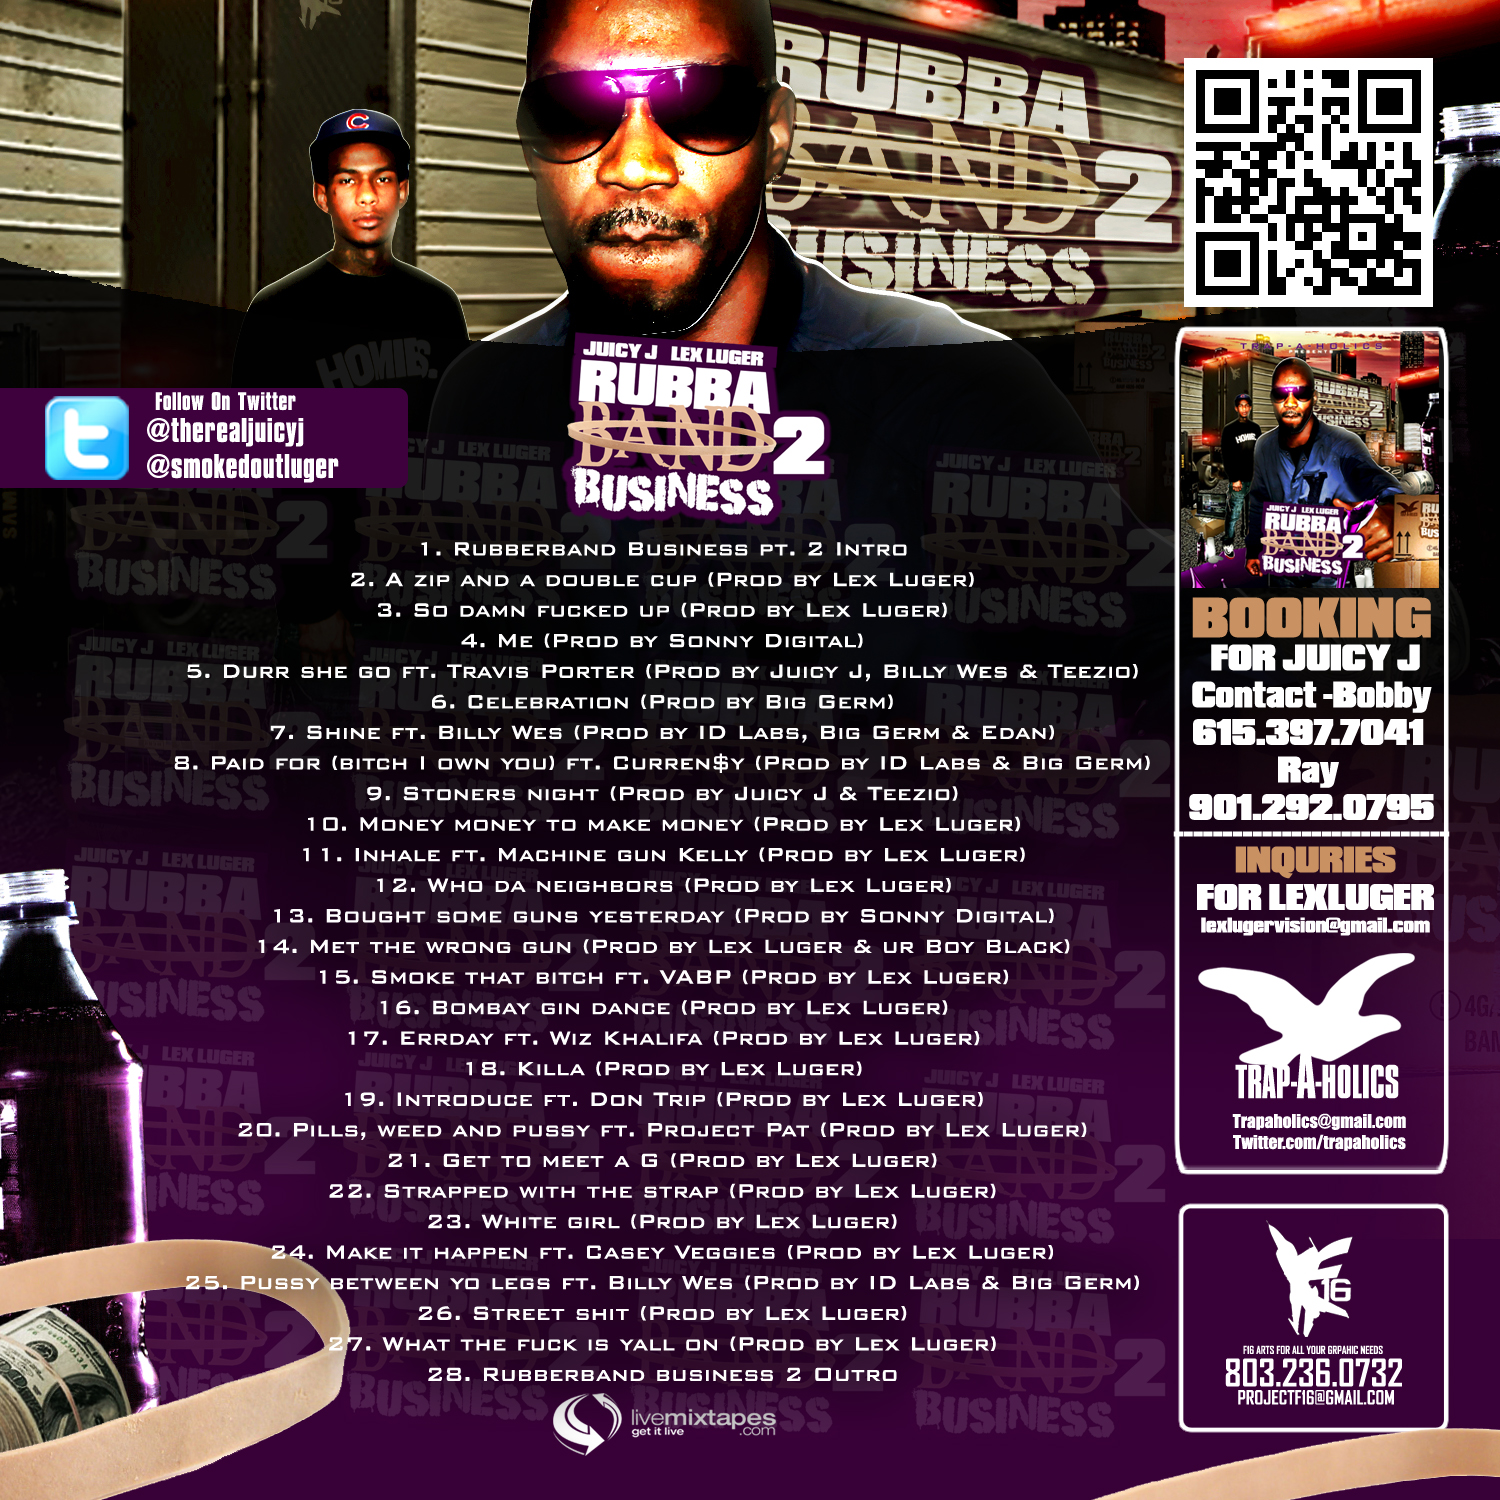 Juicy J & Lex Luger - Rubba Band Business 2 - Trap-A-Holics